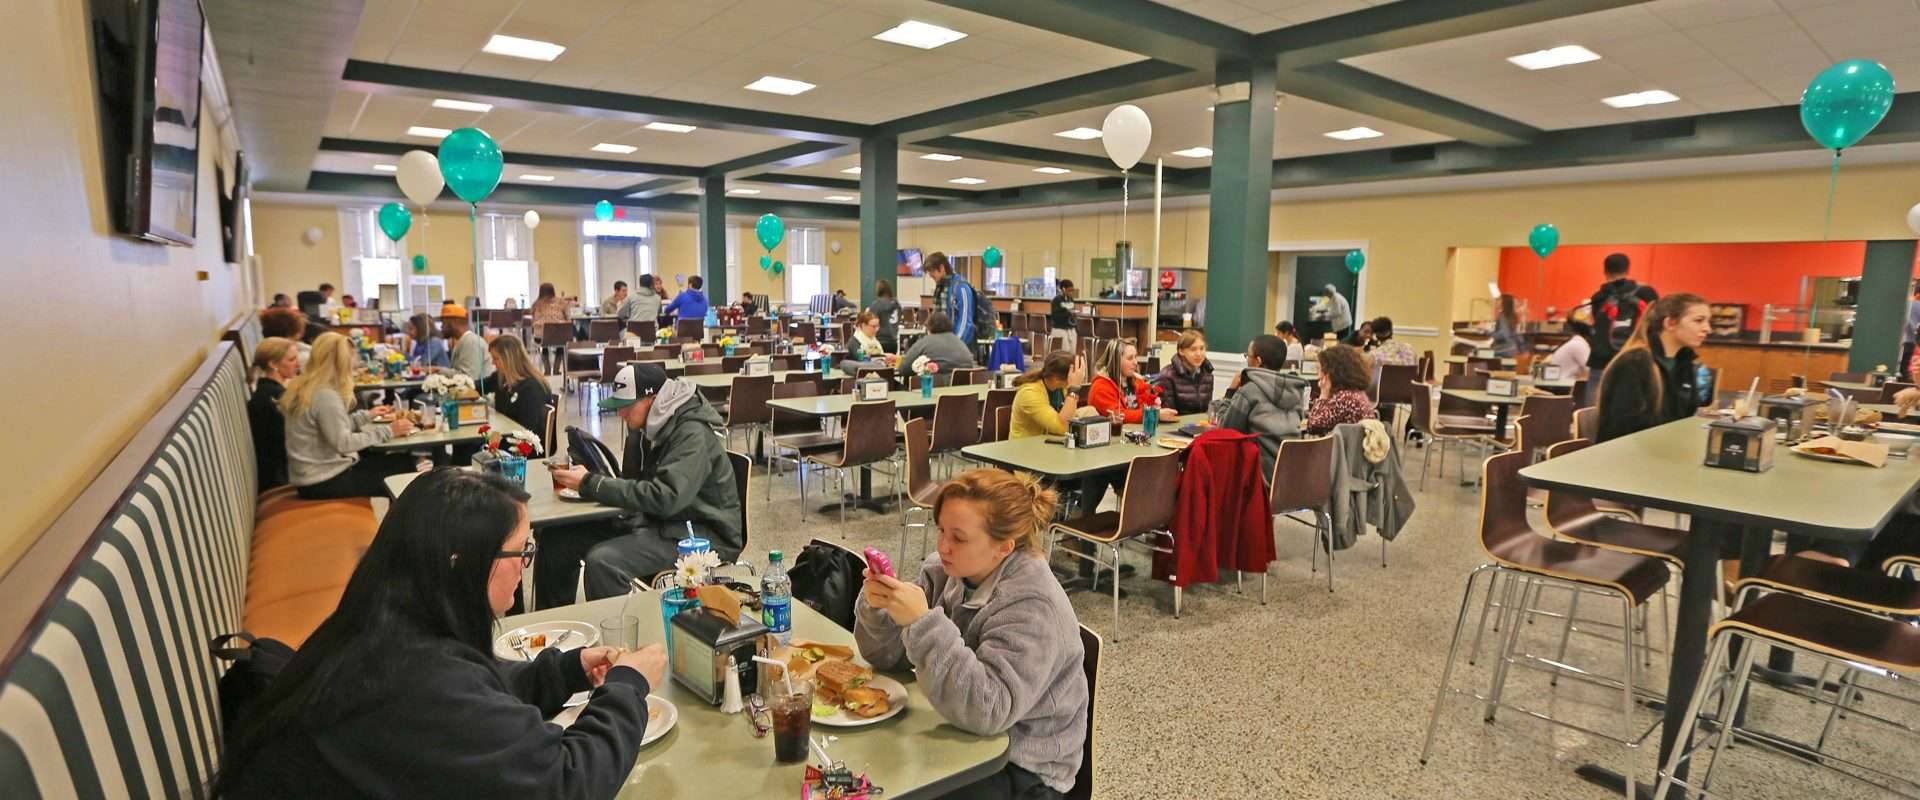 students eating in belk dining hall.